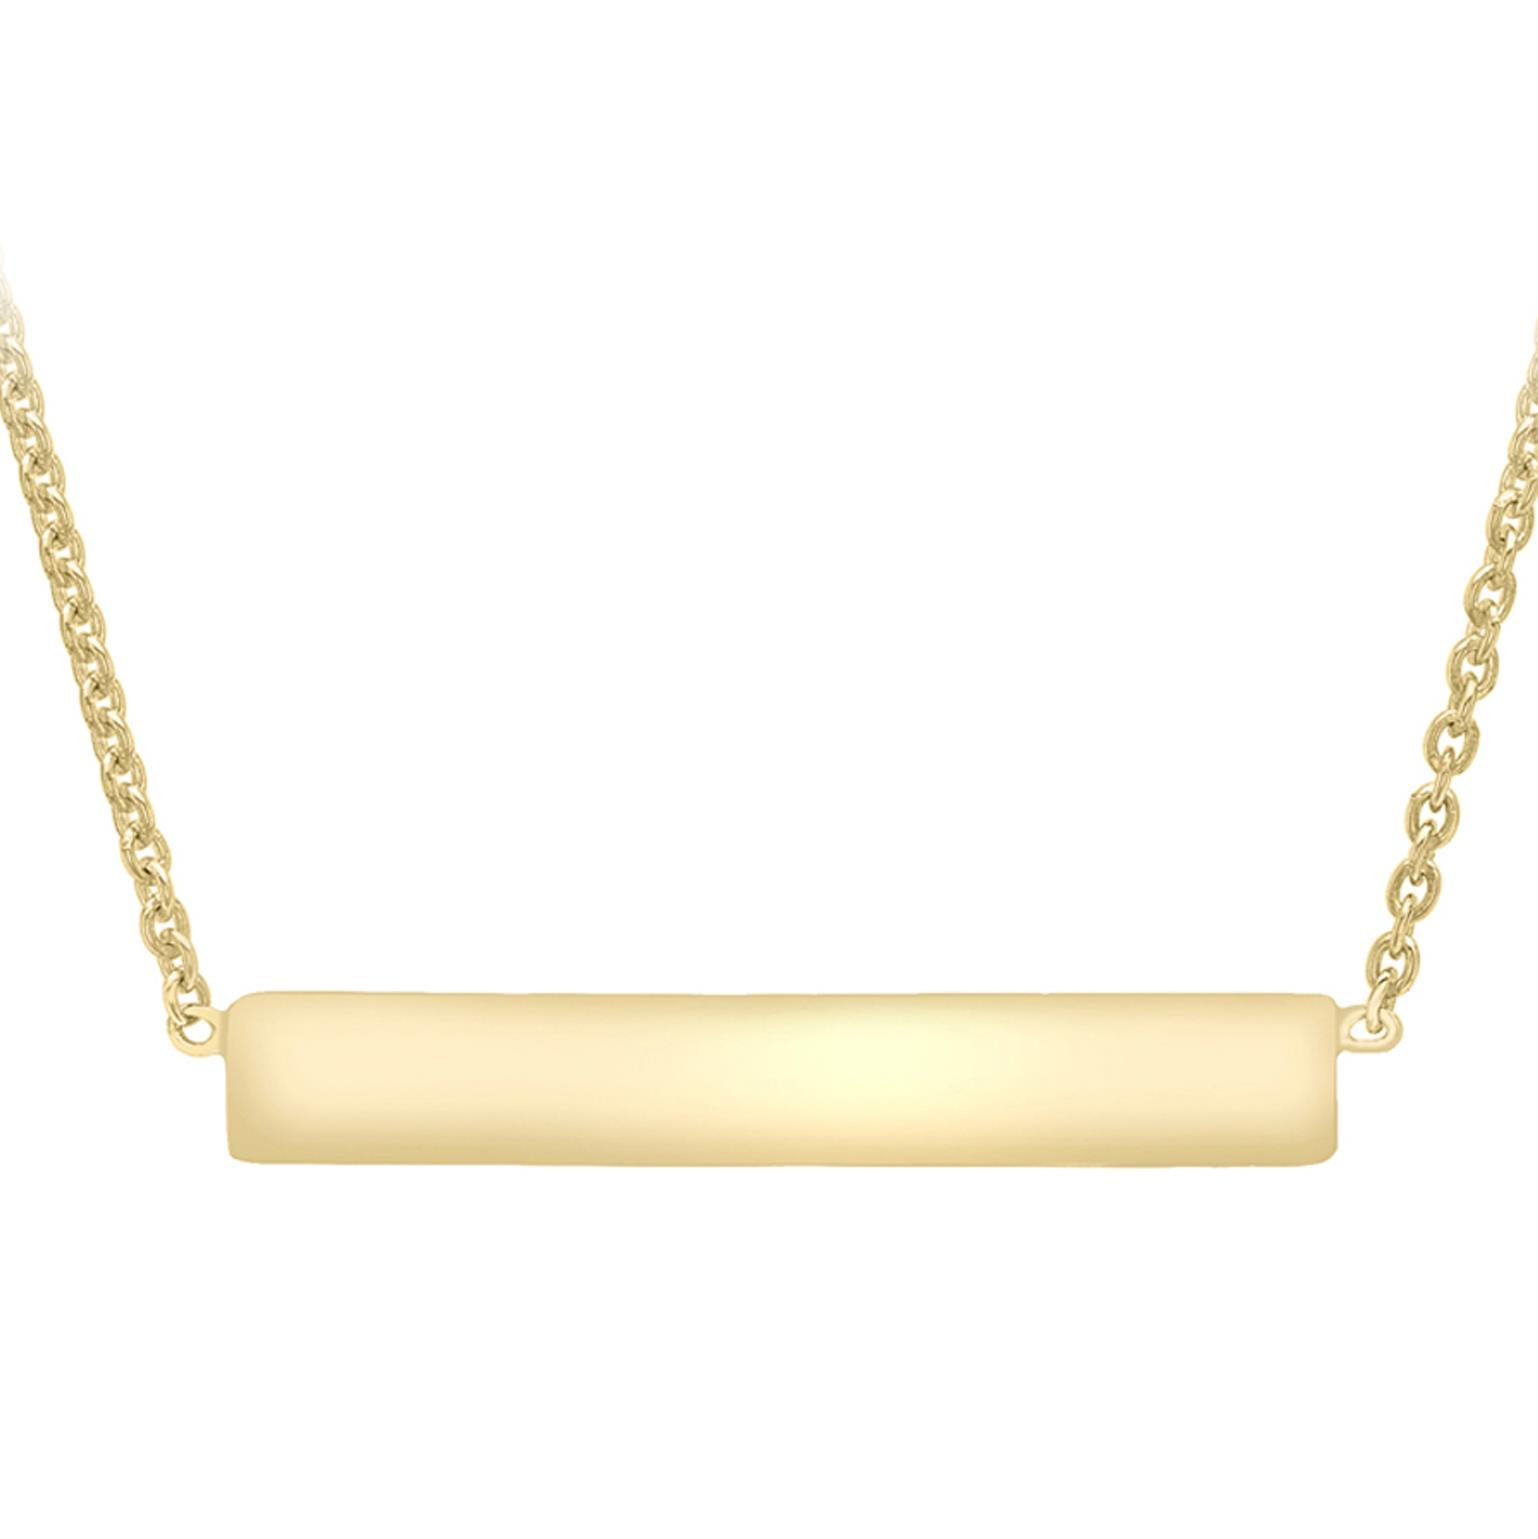 Soleil Collection Gold Bar Necklace   9K Yellow Gold